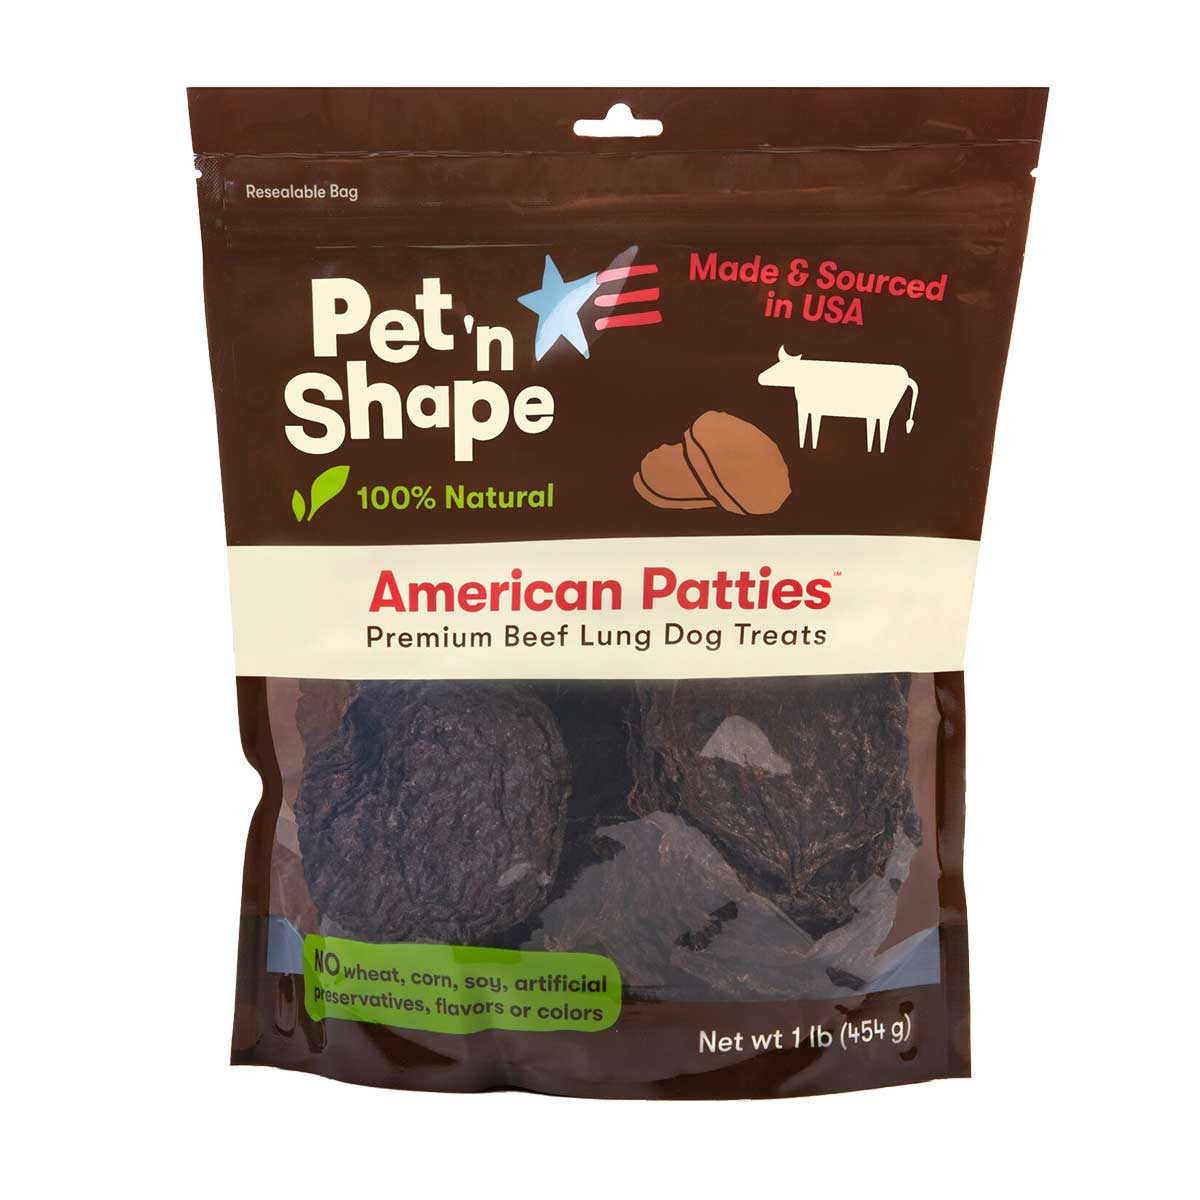 16 oz of Pet 'n Shape American Patties